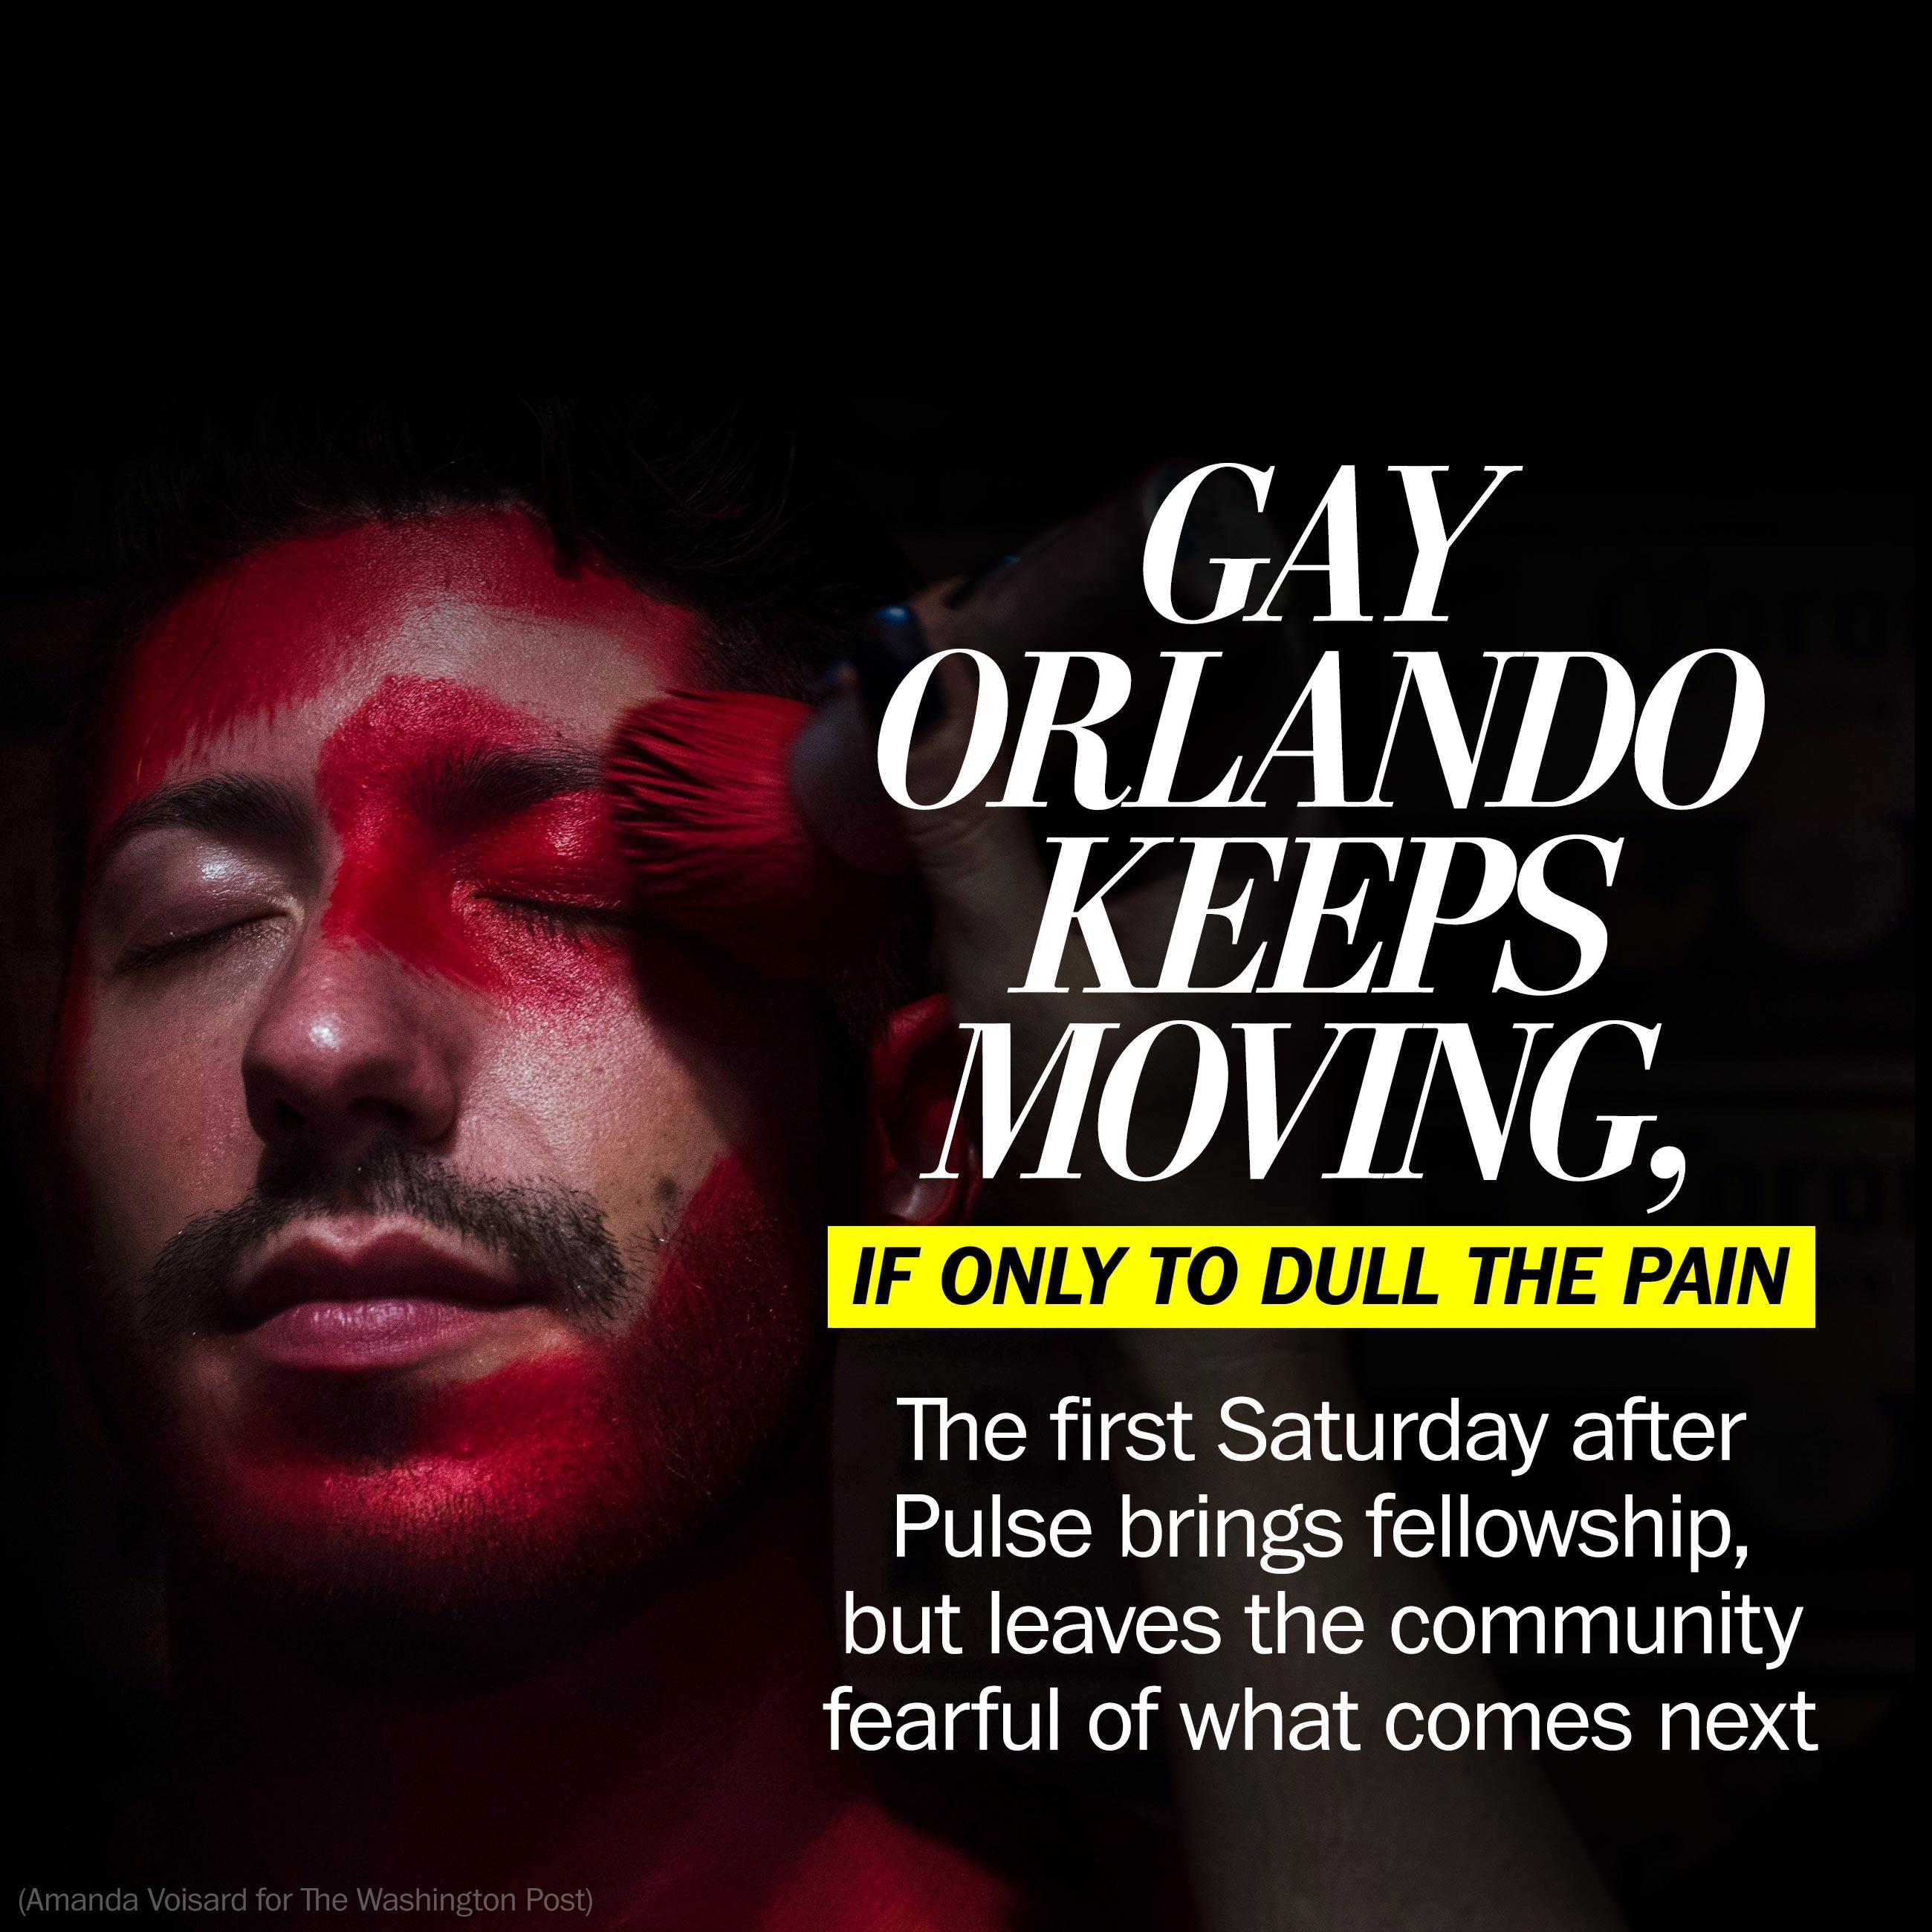 Gay Orlando grapples with first Saturday after Pulse: 'I feel like I have to be out'